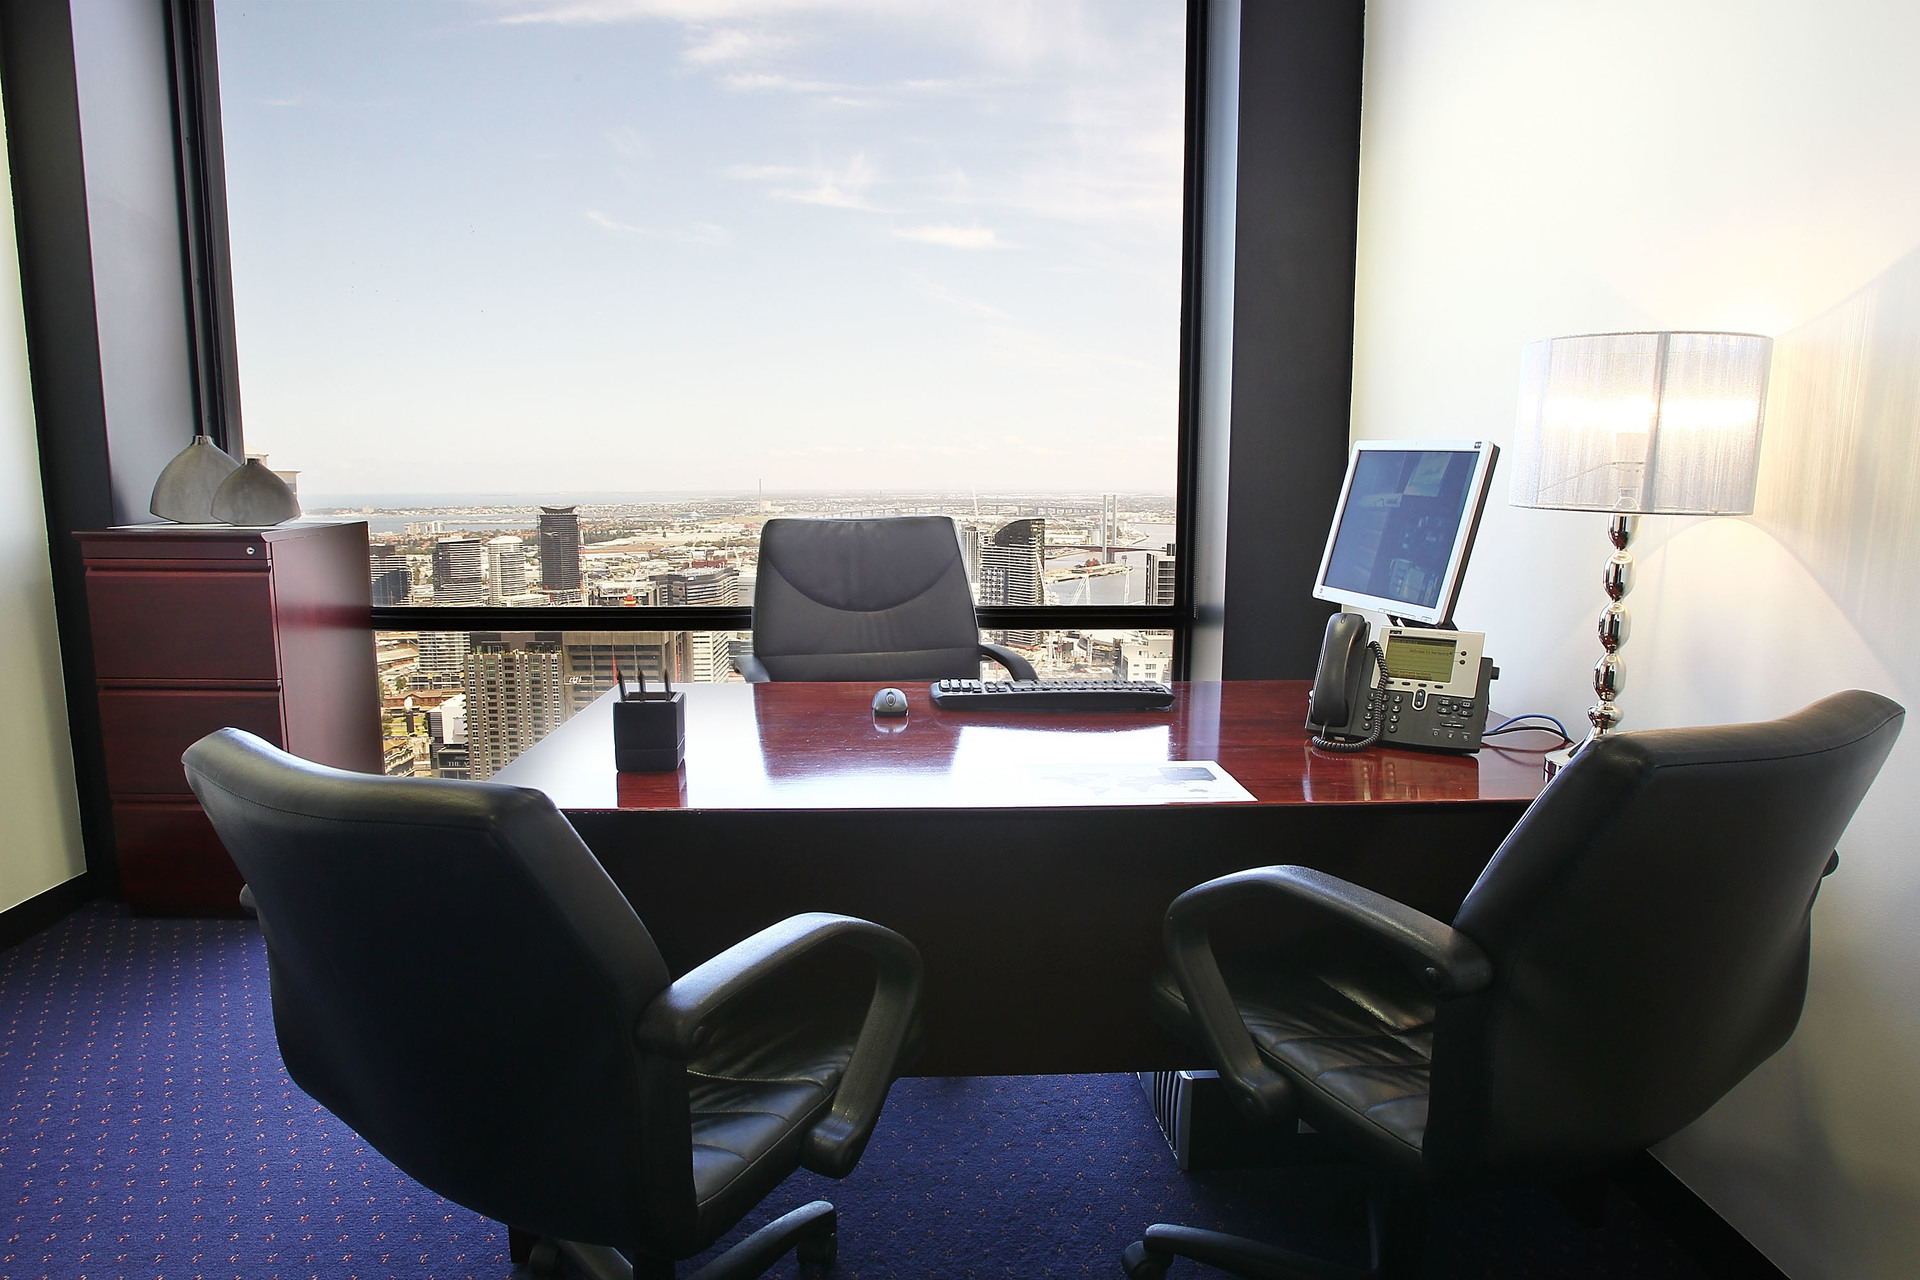 MODERN OFFICES AVAILABLE IN VIEWS LOOKING OUT ACROSS YARRA RIVER